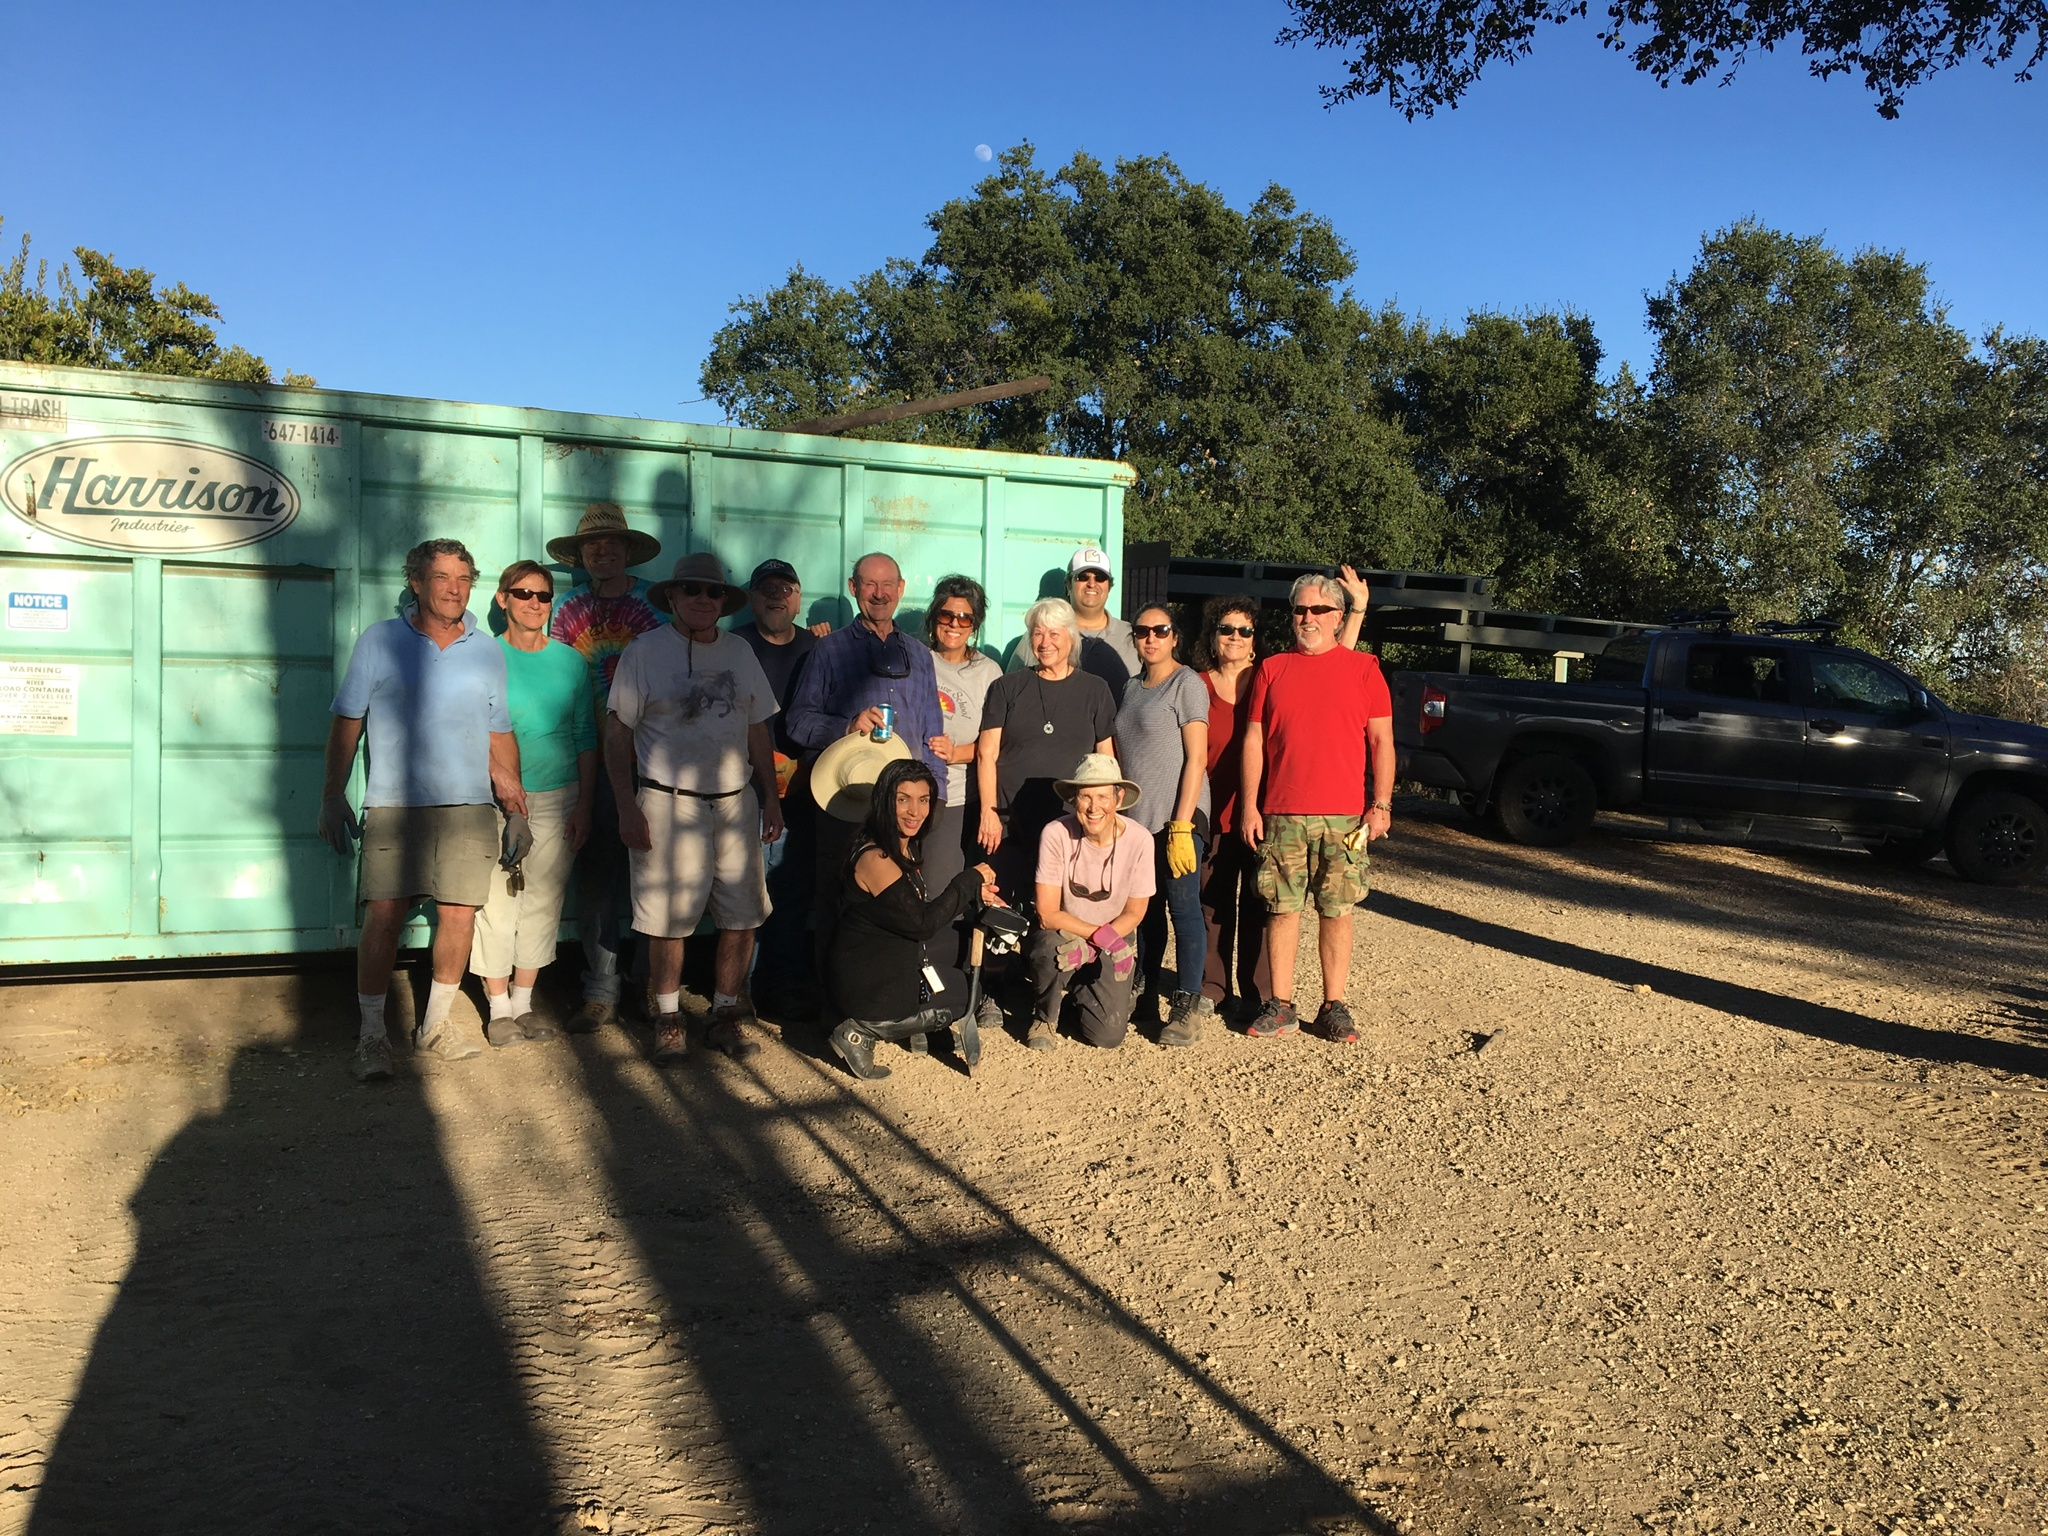 AT DAY'S END by the now-full dumpster. (Left to right) Jim Auster, Merrliee Bliss, James Whedon, James Whitson, Buzz Glasky, Sam L. Ervin, Yolanda Koumidou, Ginger Glasky, Homayar Gandhi, Khushnam Crawford, Marta Flores, Satya Keyes. (Kneeling) Sarah Larsen, Margaret Magnus. (In shadow) Bing Heckman. (Photo: Cassandra Bramucci, January 28, 2018)